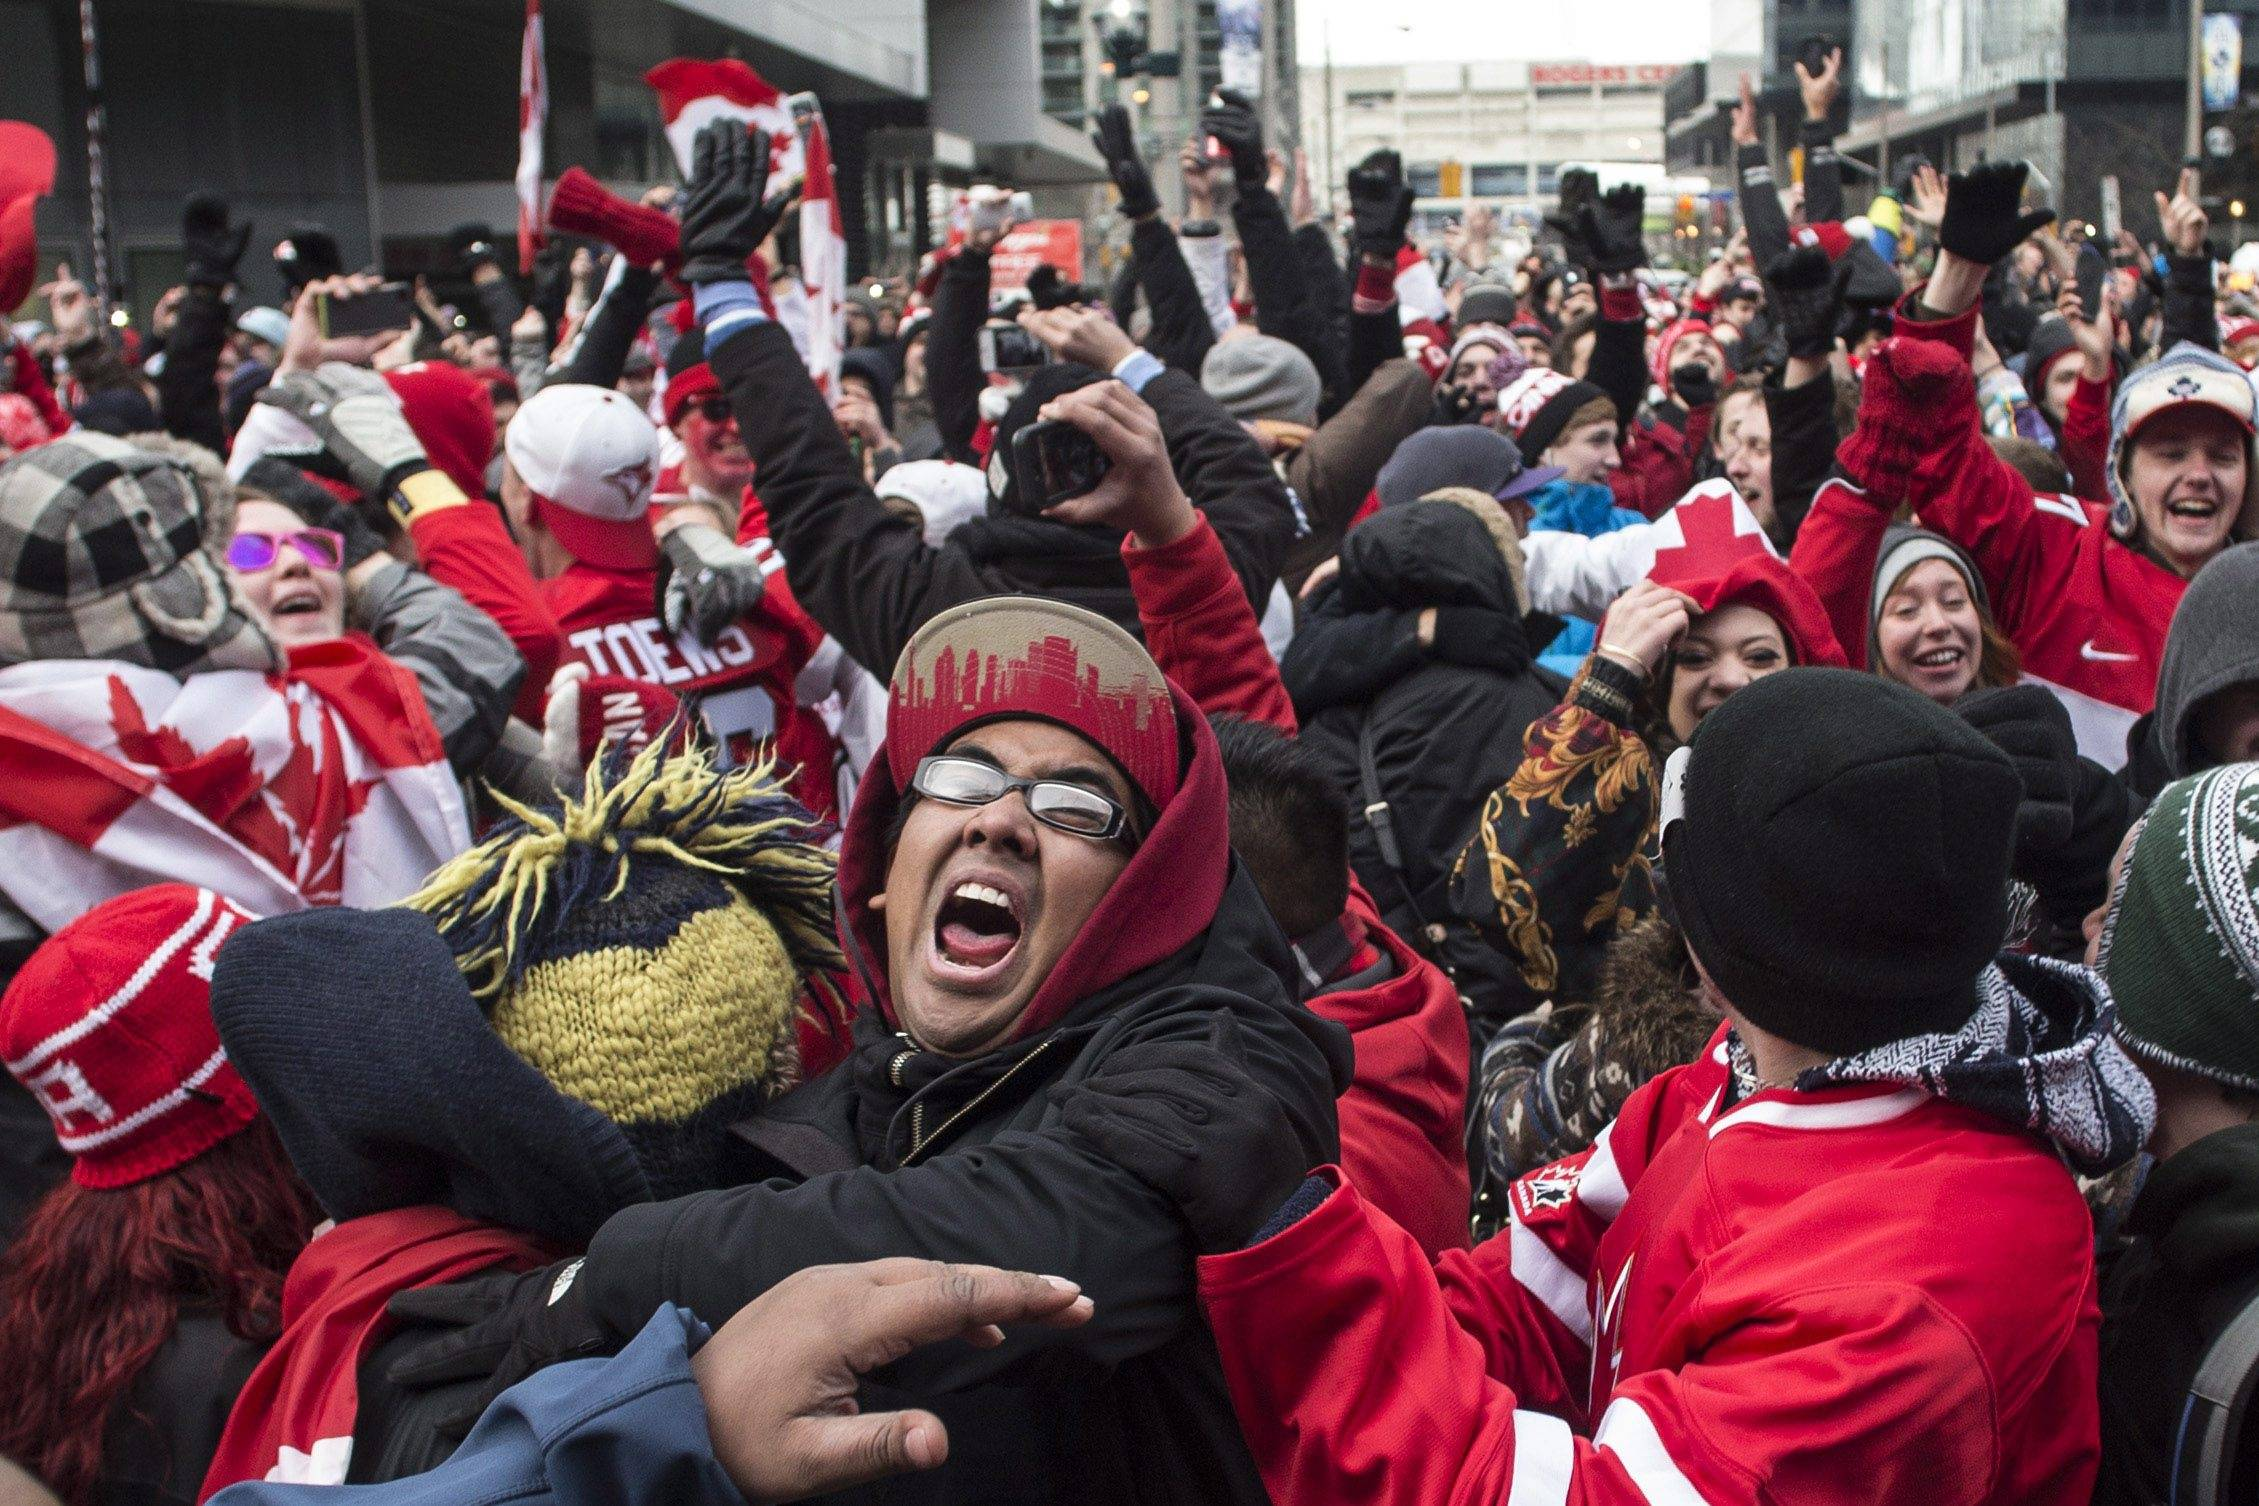 Hockey fans celebrate in Toronto's Maple Leaf Square in Toronto after the final buzzer as Canada beat Sweden 3-0 to win the Gold Medal in the men's Olympic Hockey Final on Sunday, Feb. 23, 2014.